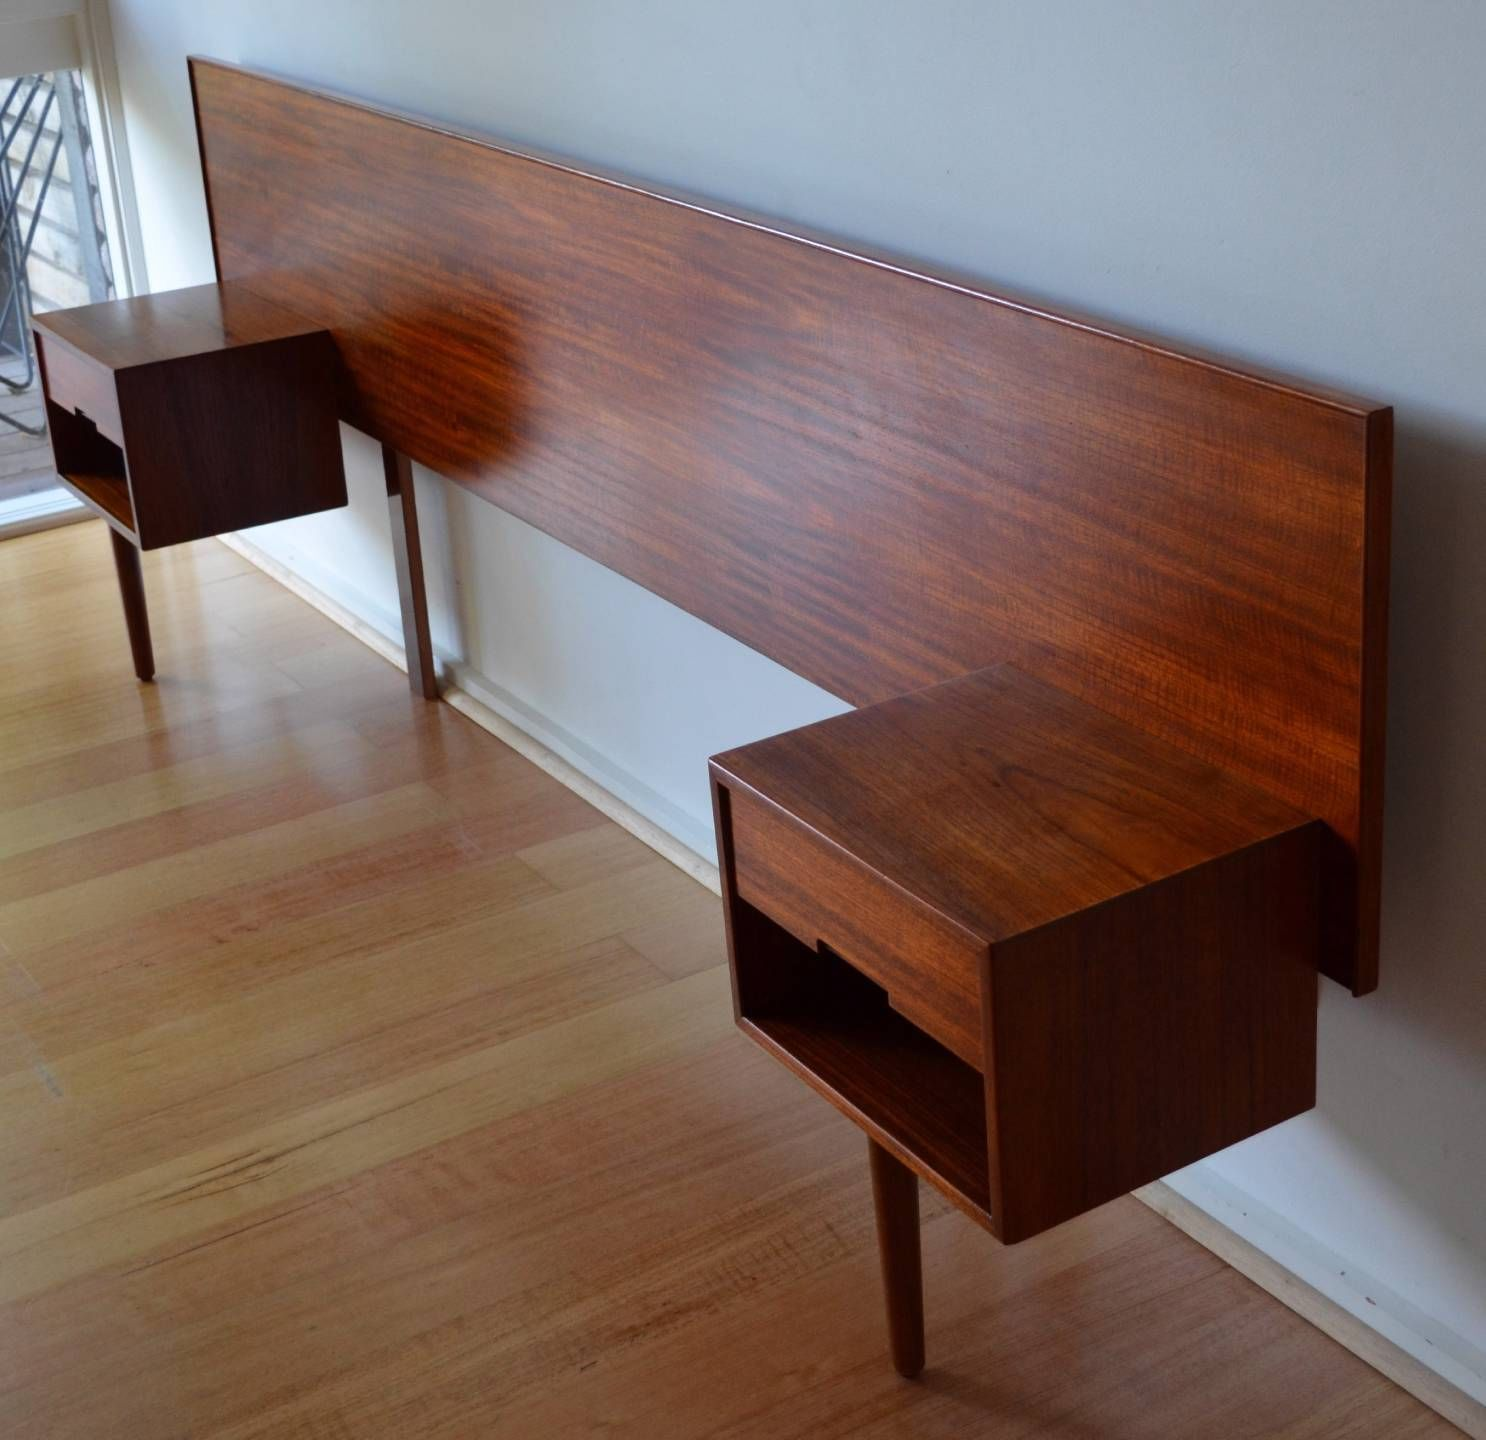 Retro Mid Century Danish Modern Teak Queen Bed Head Bedside Tables Hans Hayson In Seaford Vic Ebay